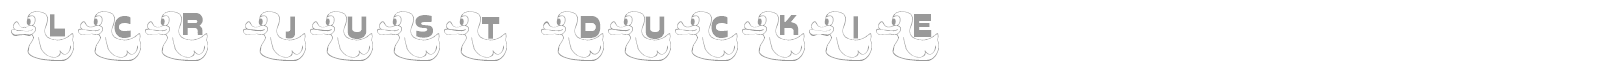 Font LCR Just Duckie